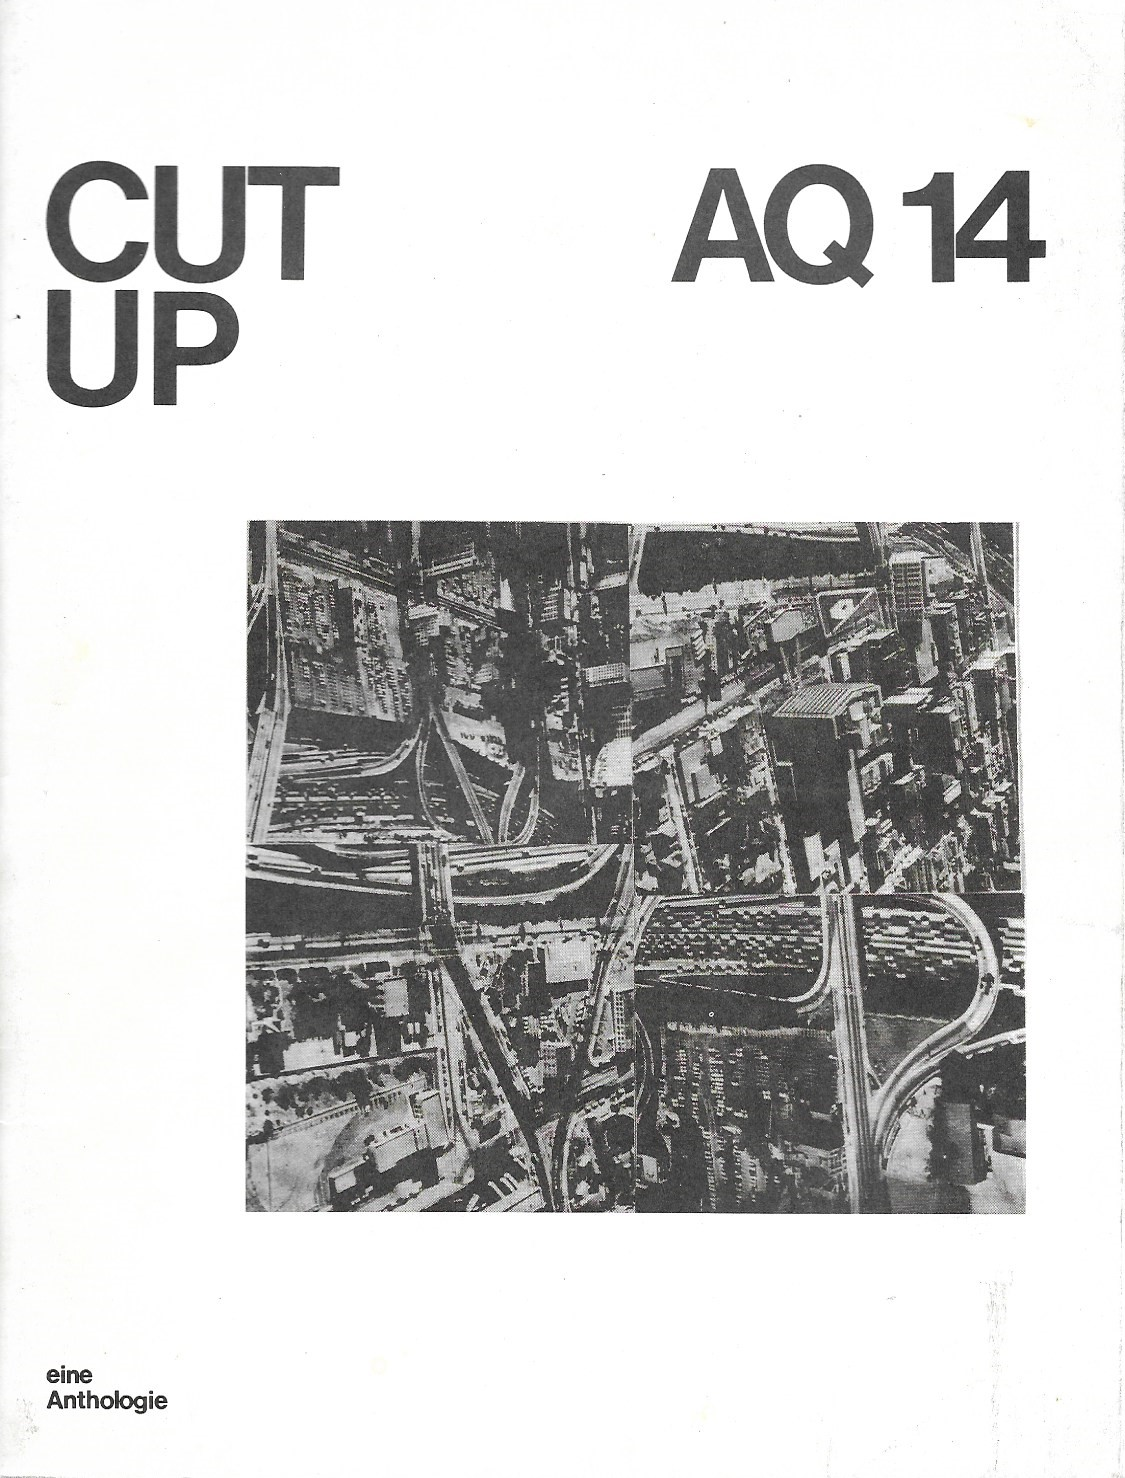 Image for Cut Up, AQ 14, Eine Anthologie